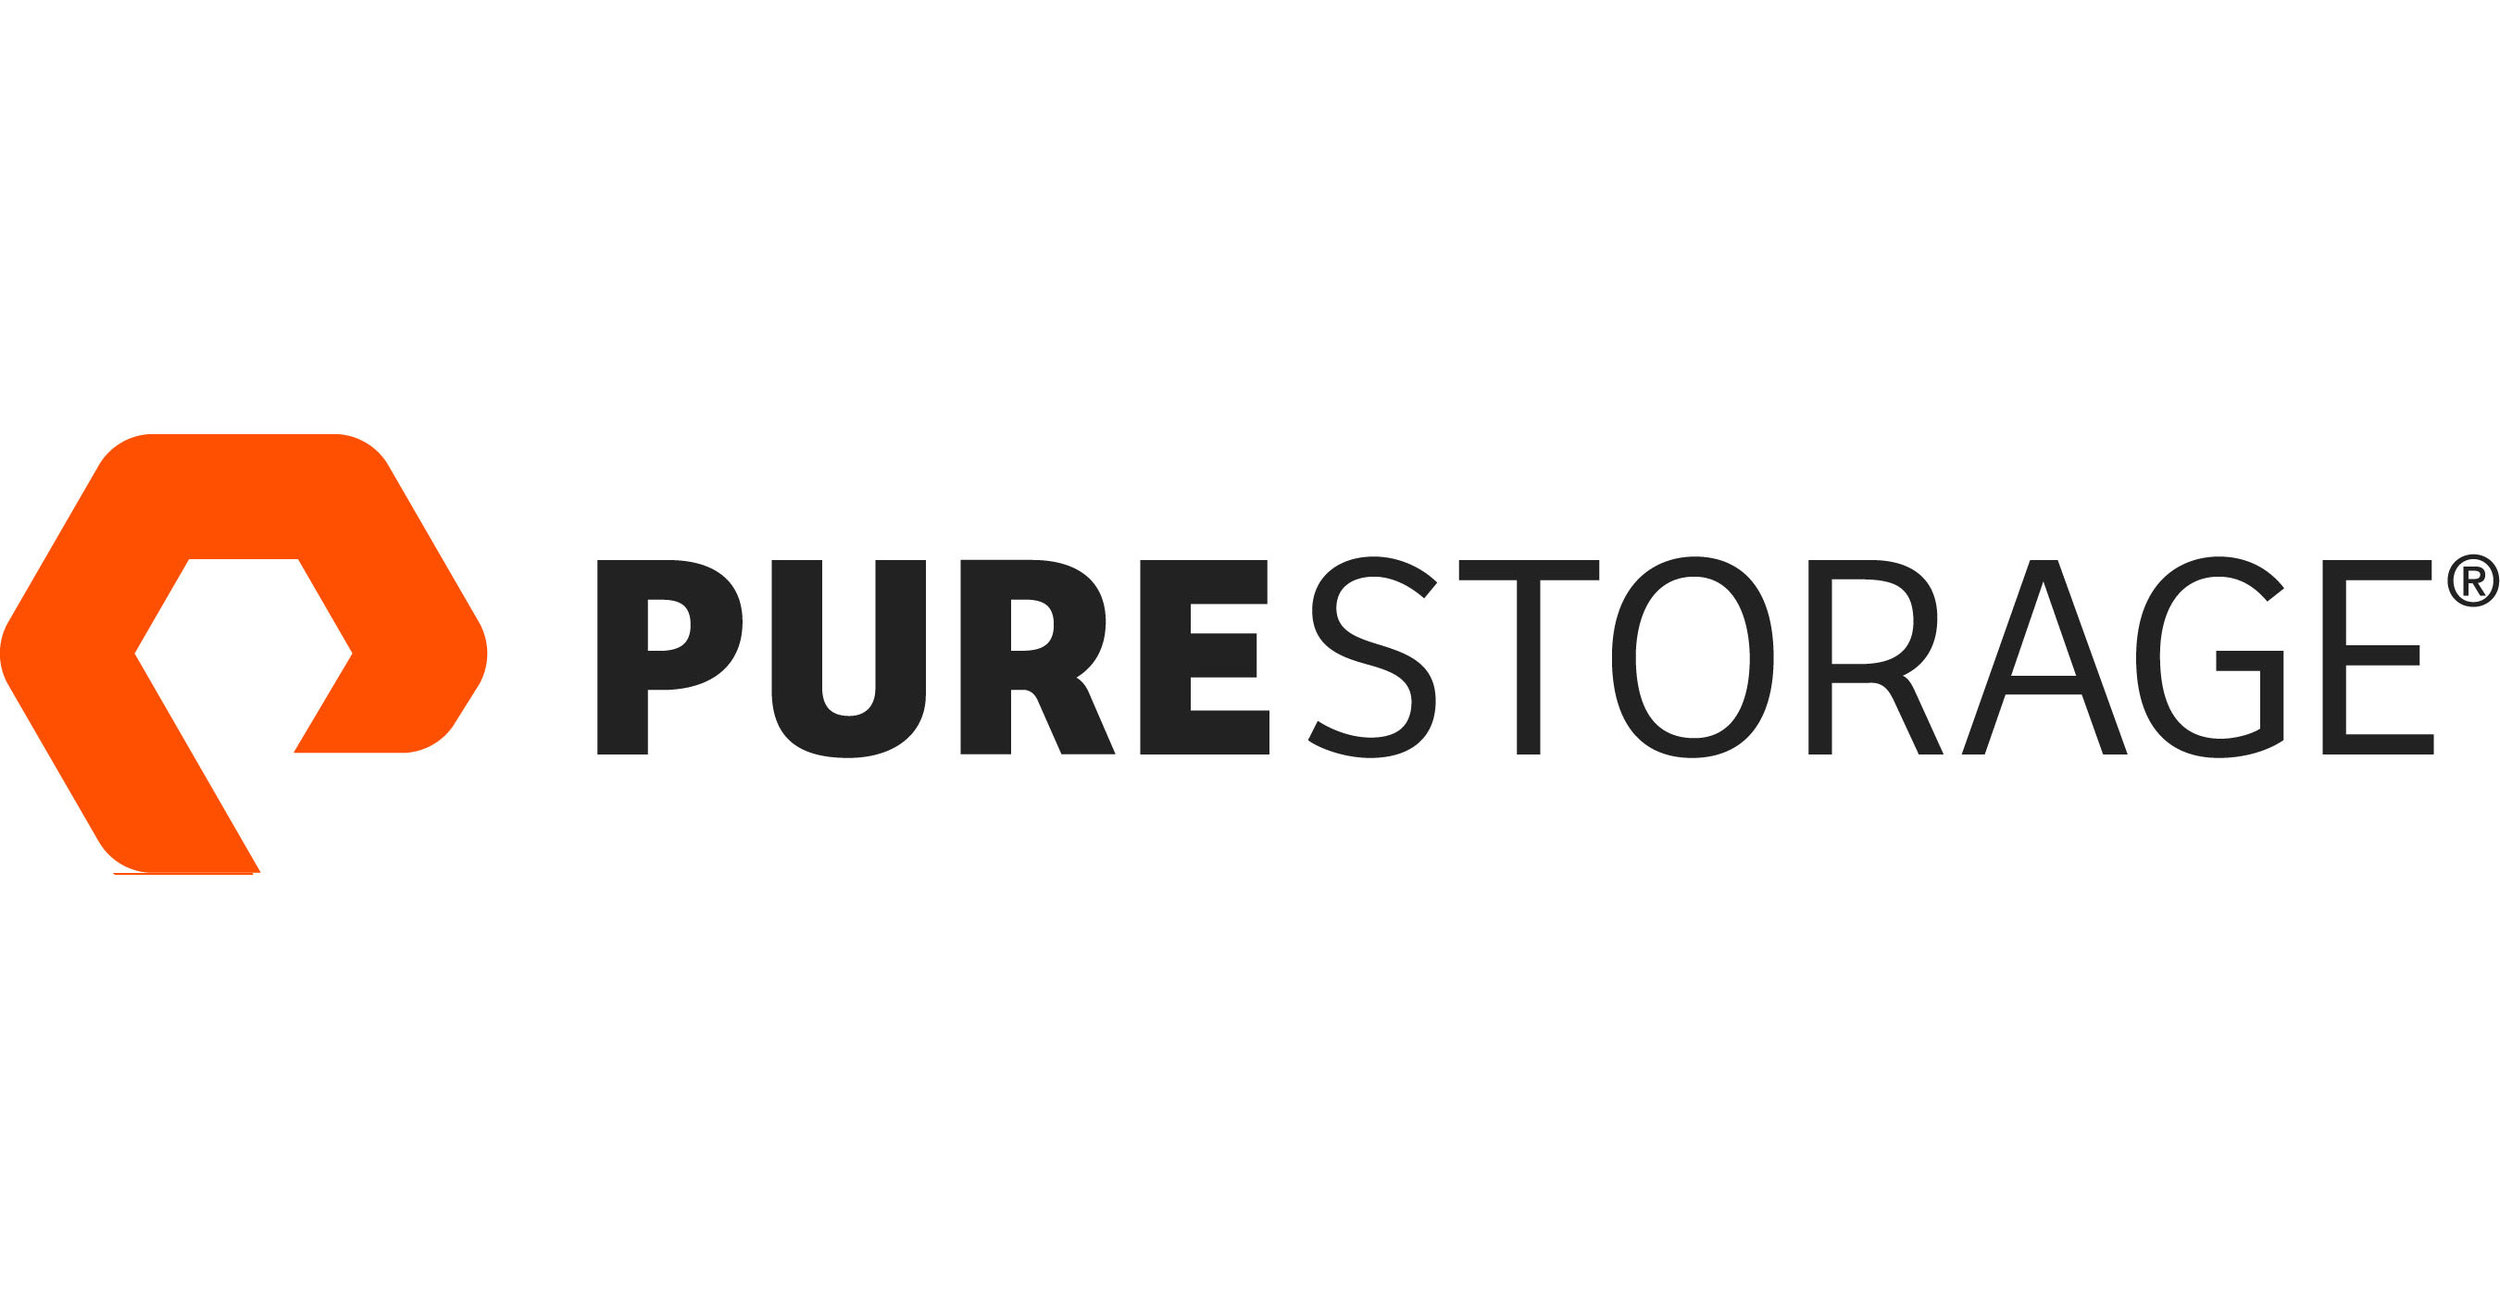 pure storage logo.jpg